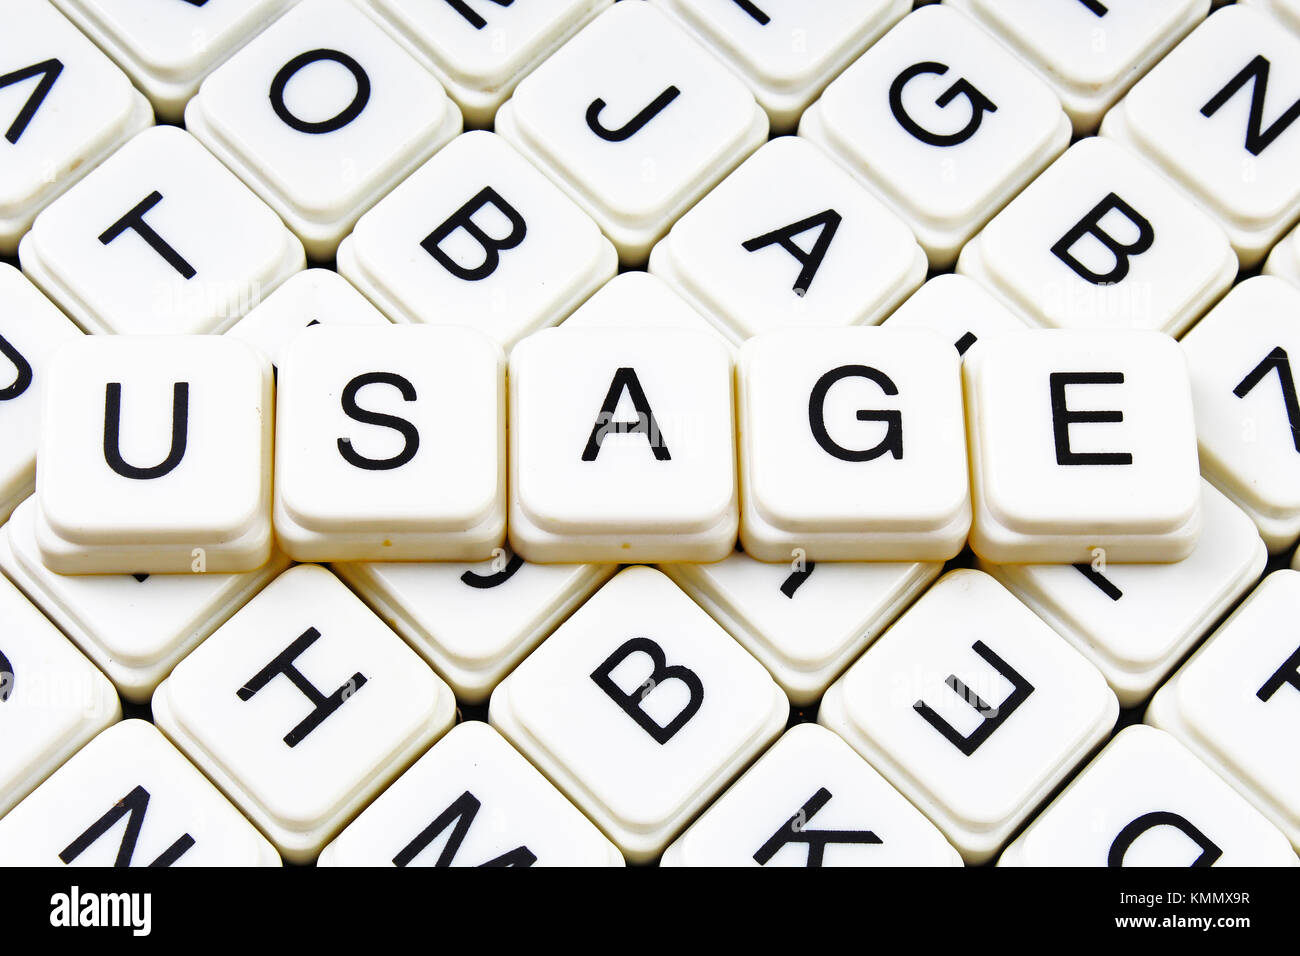 usage,title text word crossword. Alphabet letter blocks game texture background. White alphabetical letters on black - Stock Image